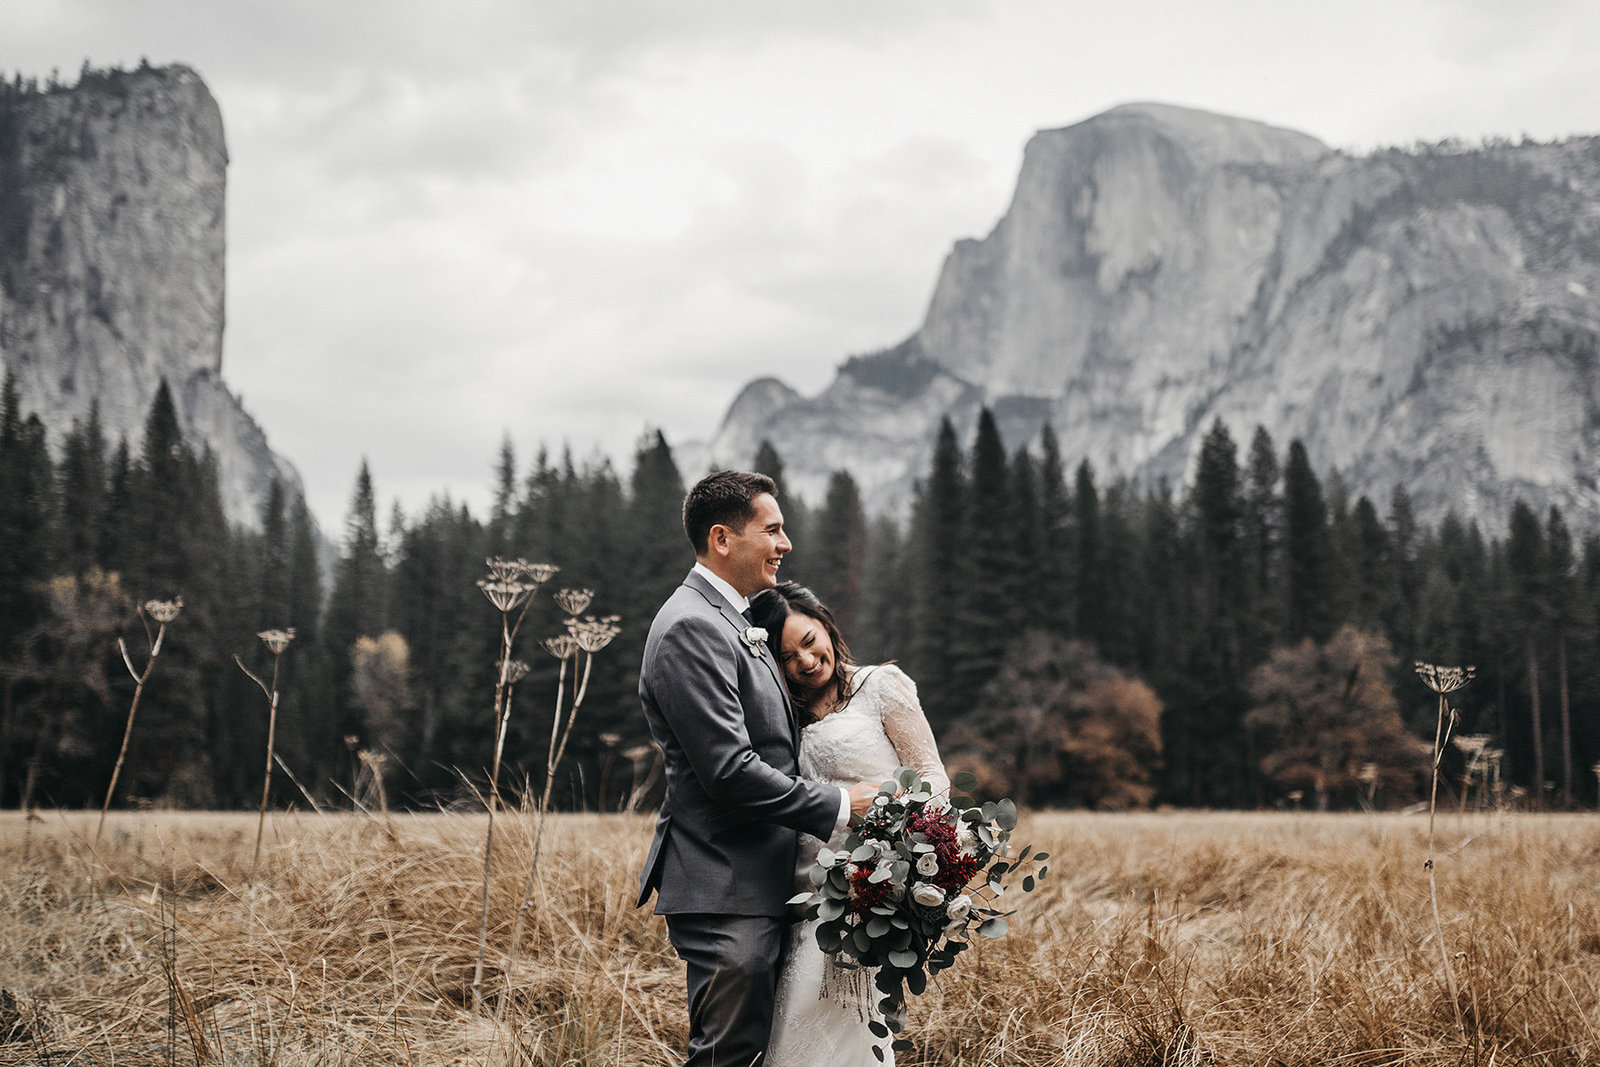 athena-and-camron-how-to-elope-in-yosemite-national-park-elopement-guide-lily-joshua